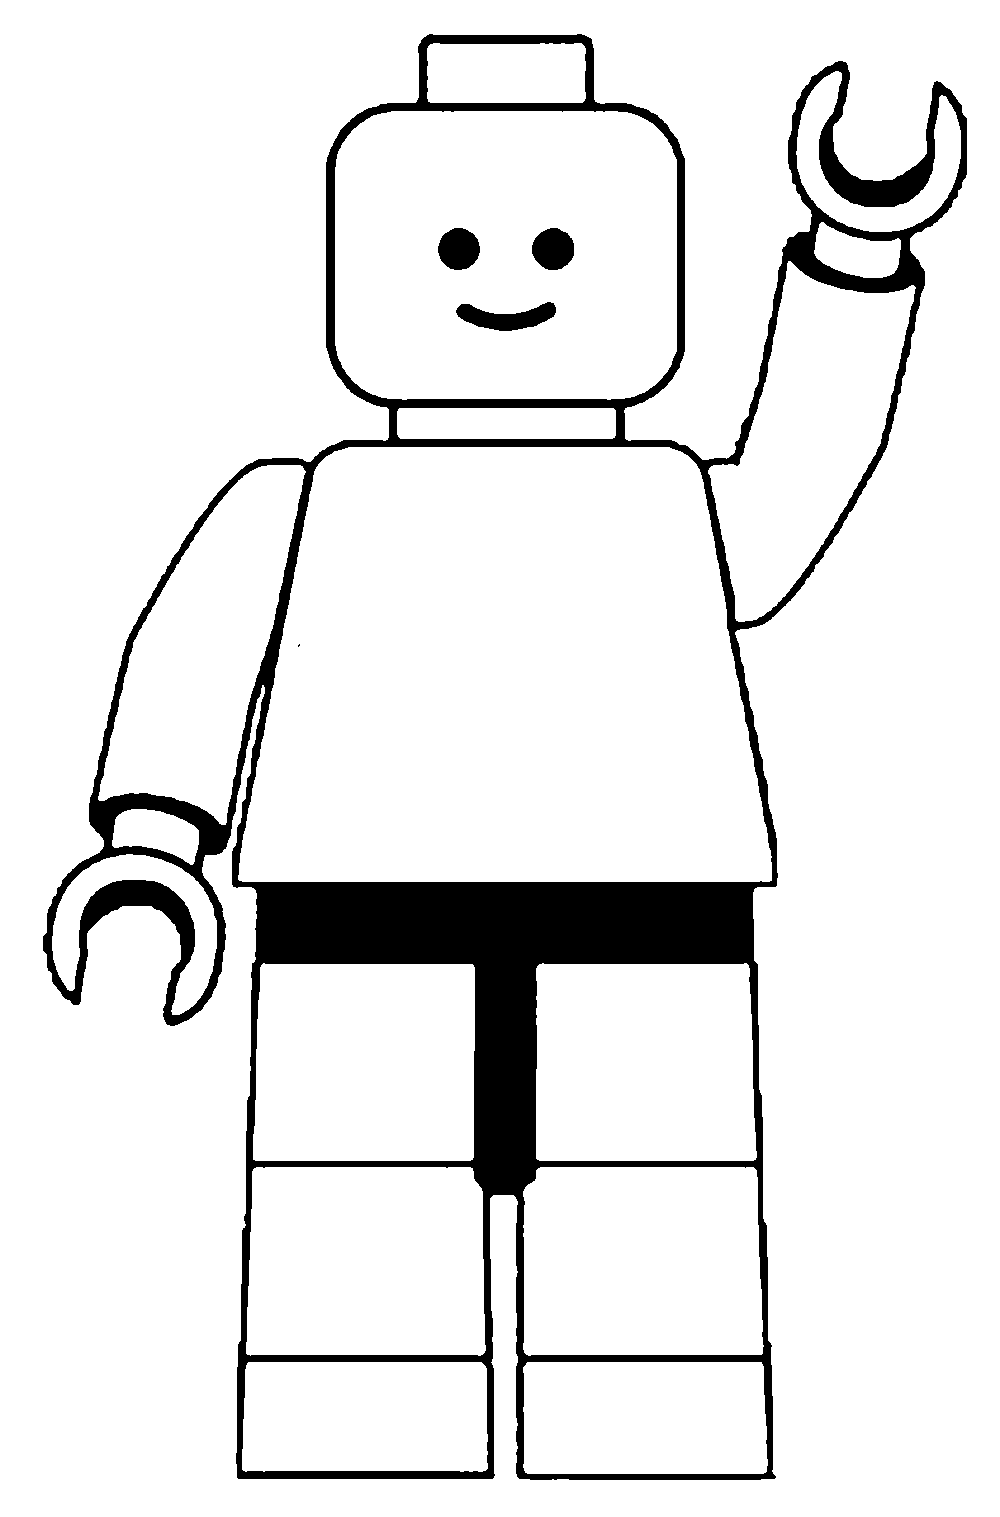 Lego man clip art. Marbles clipart black and white